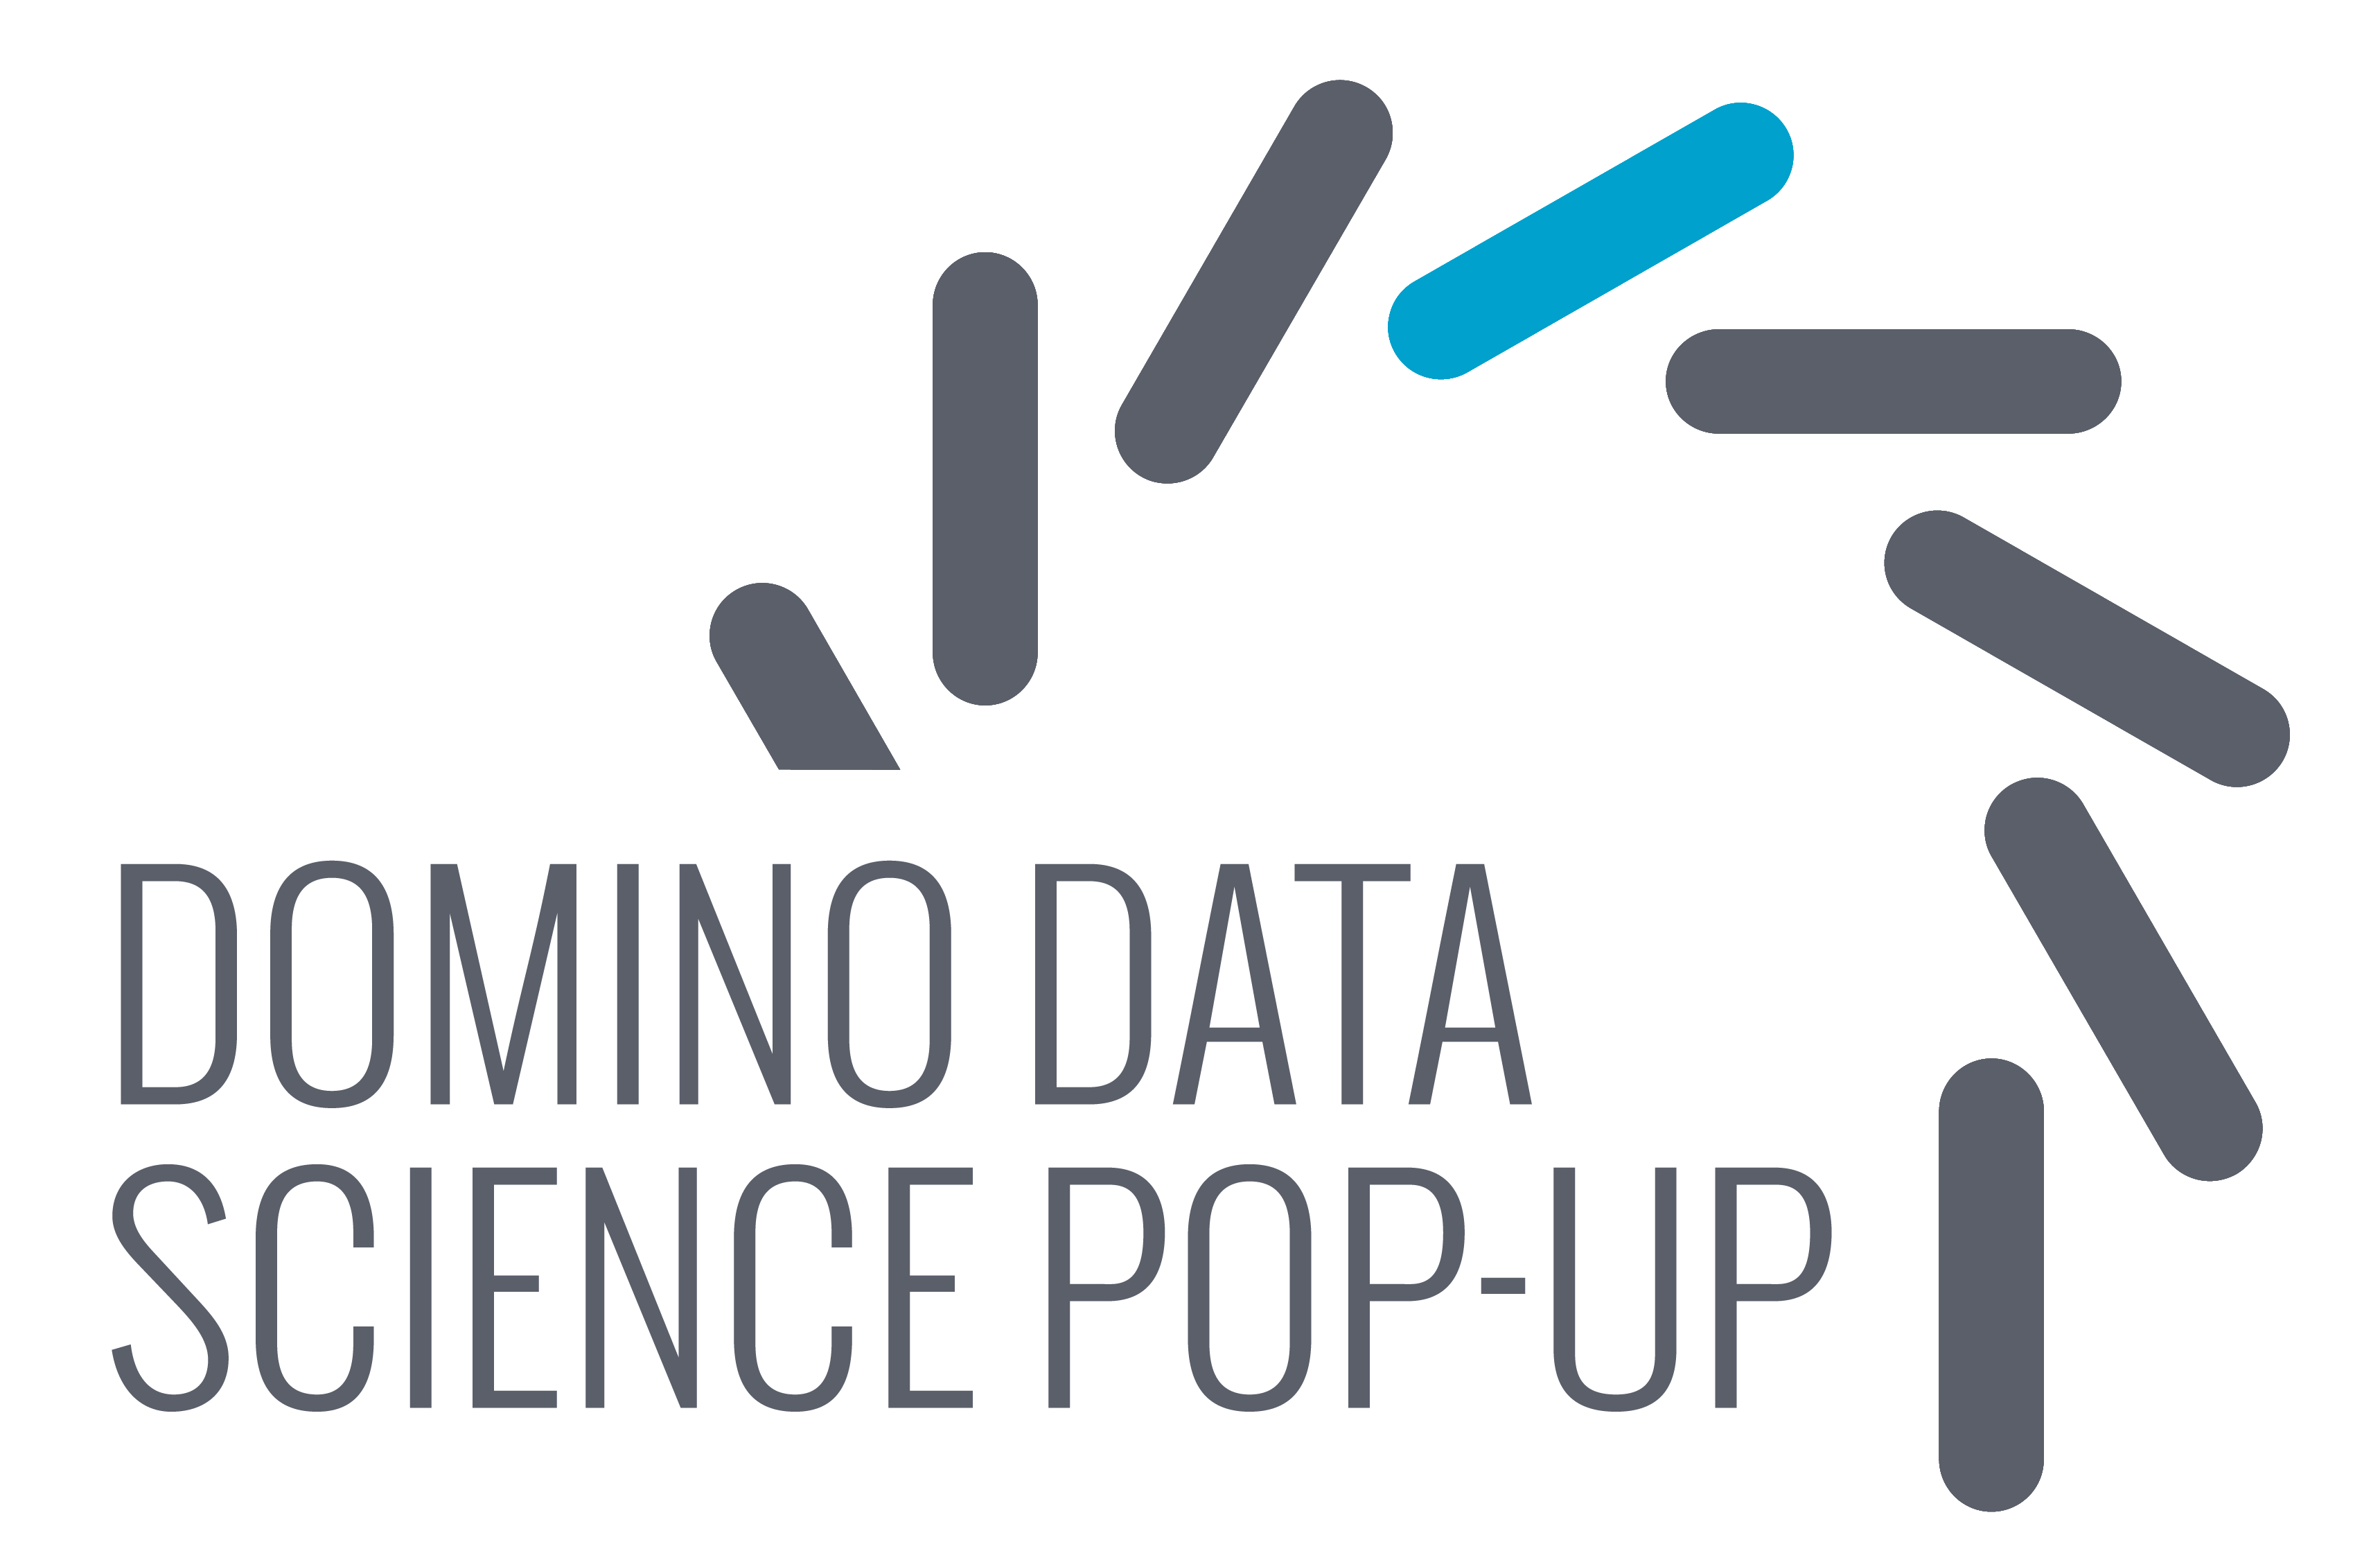 Midwest Data Science Pop-up